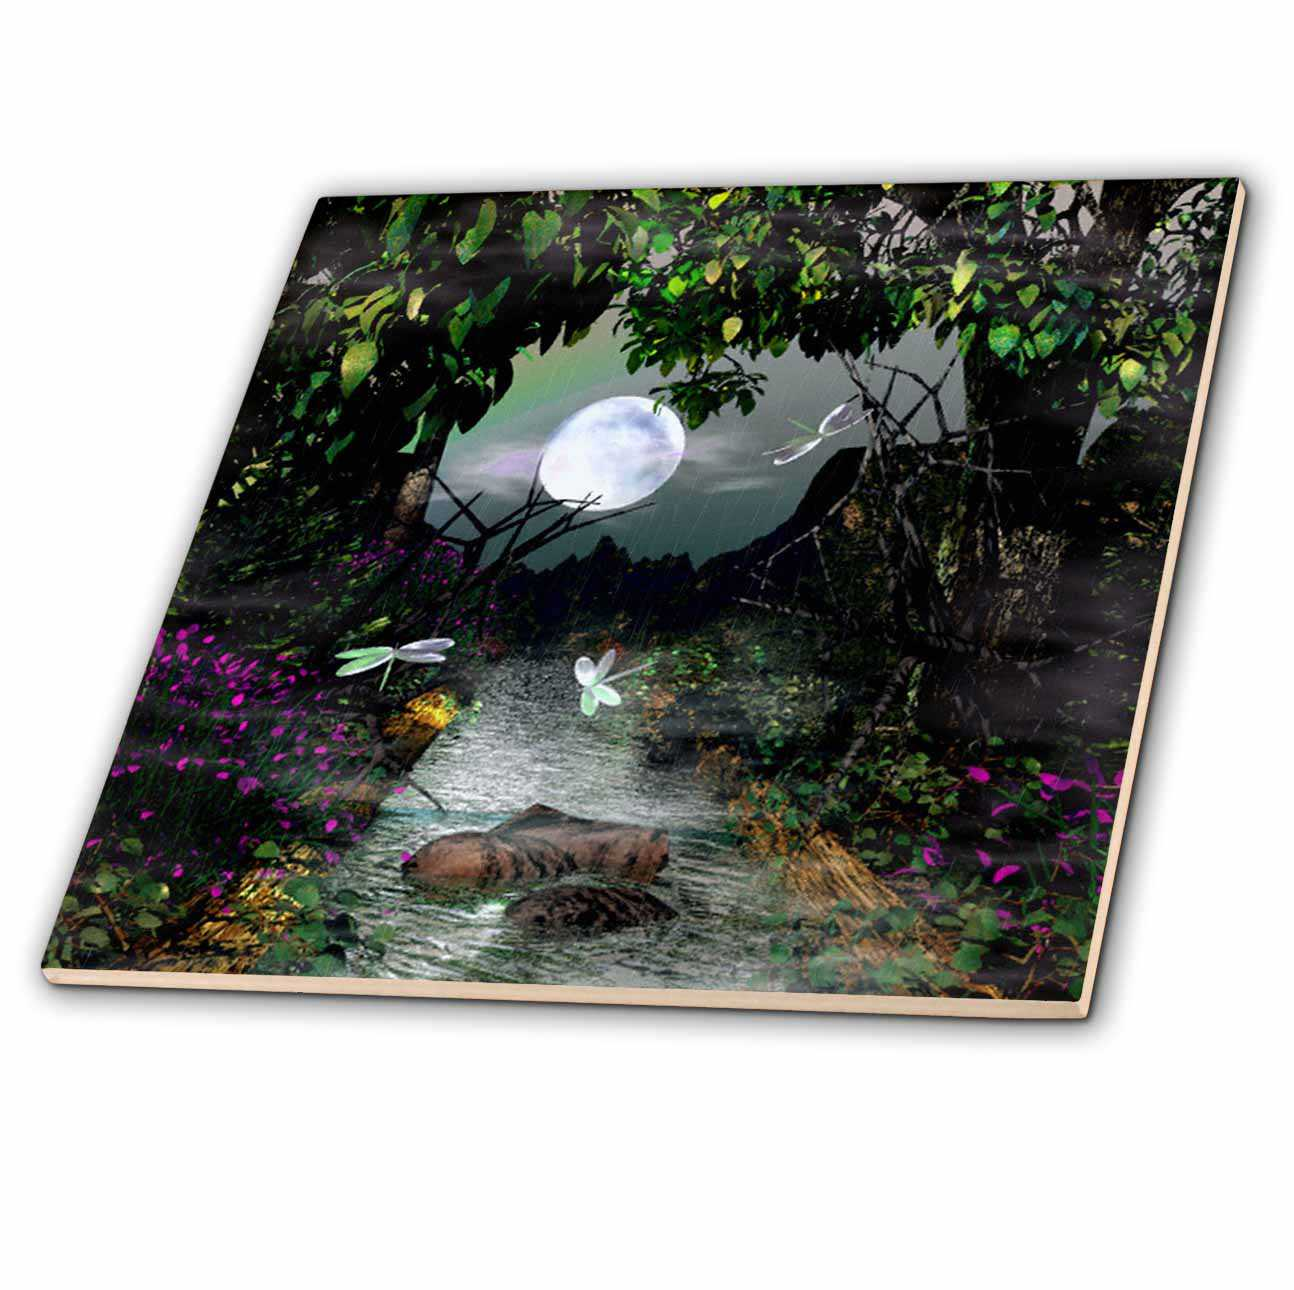 3dRose Creek, Moon Nature Scene - Ceramic Tile, 6-inch